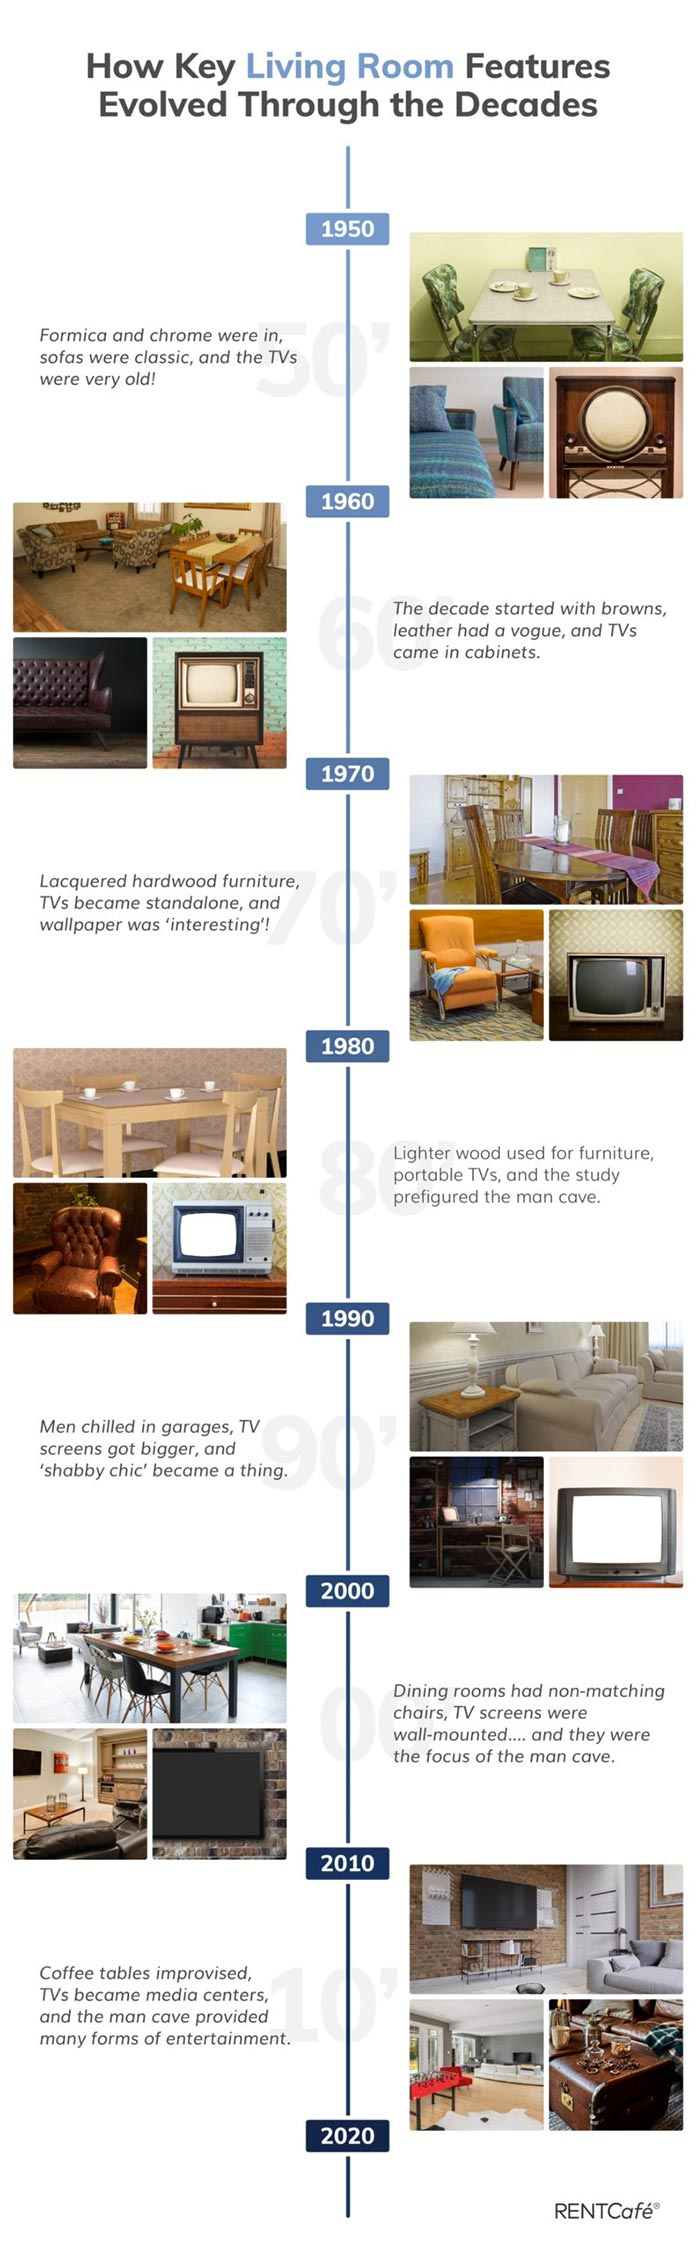 Infographic on interior design, showing the evolution of interiors from 1950 to 2020, from RentCafe